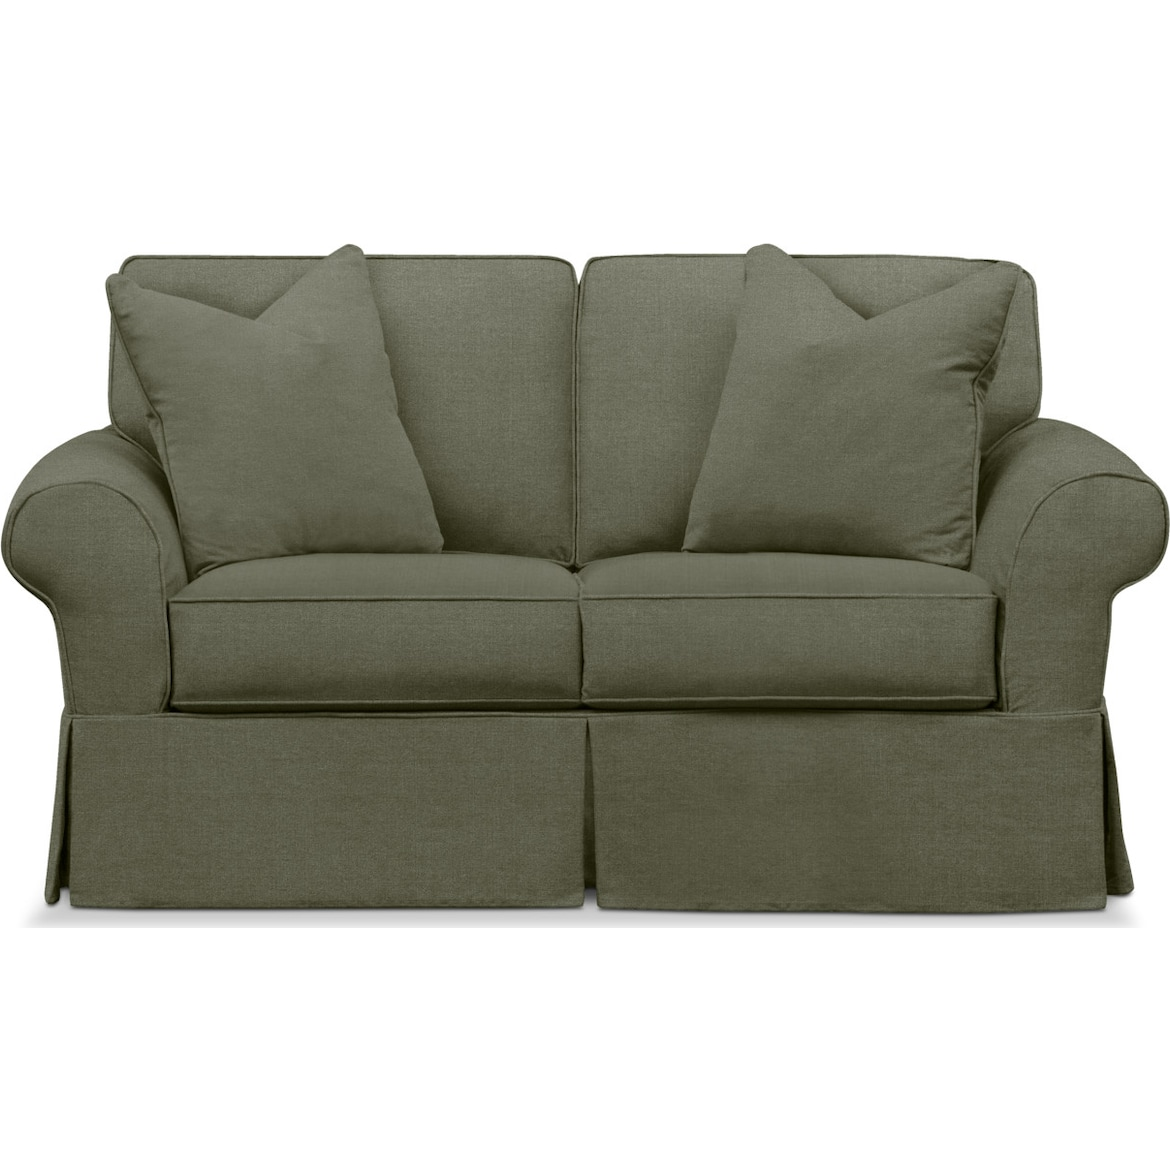 Sawyer Slipcover Loveseat Value City Furniture And